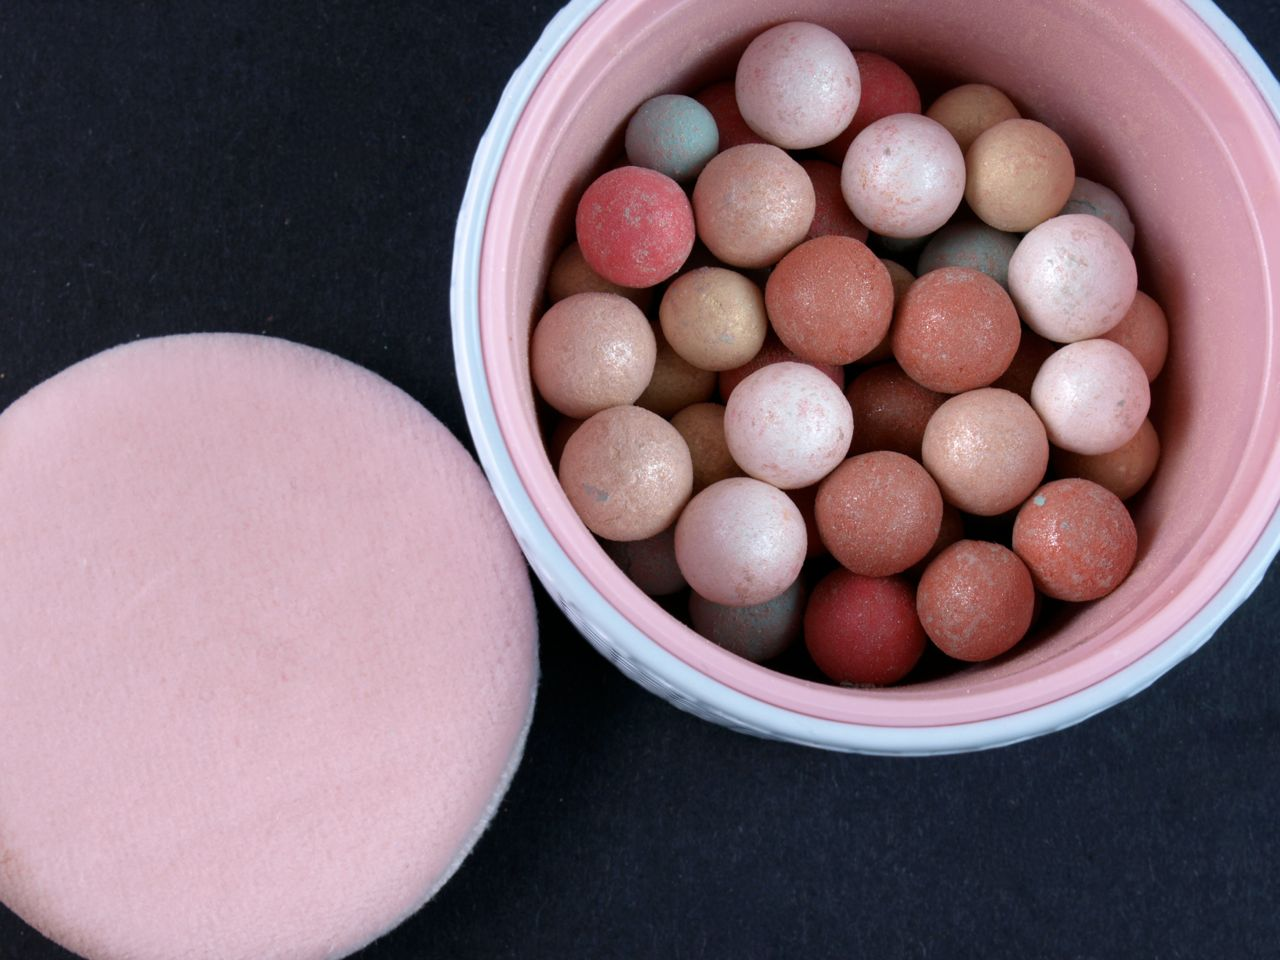 Guerlain Limited Edition Summer 2015 Meteorites Rainbow Pearls: Review and Swatches